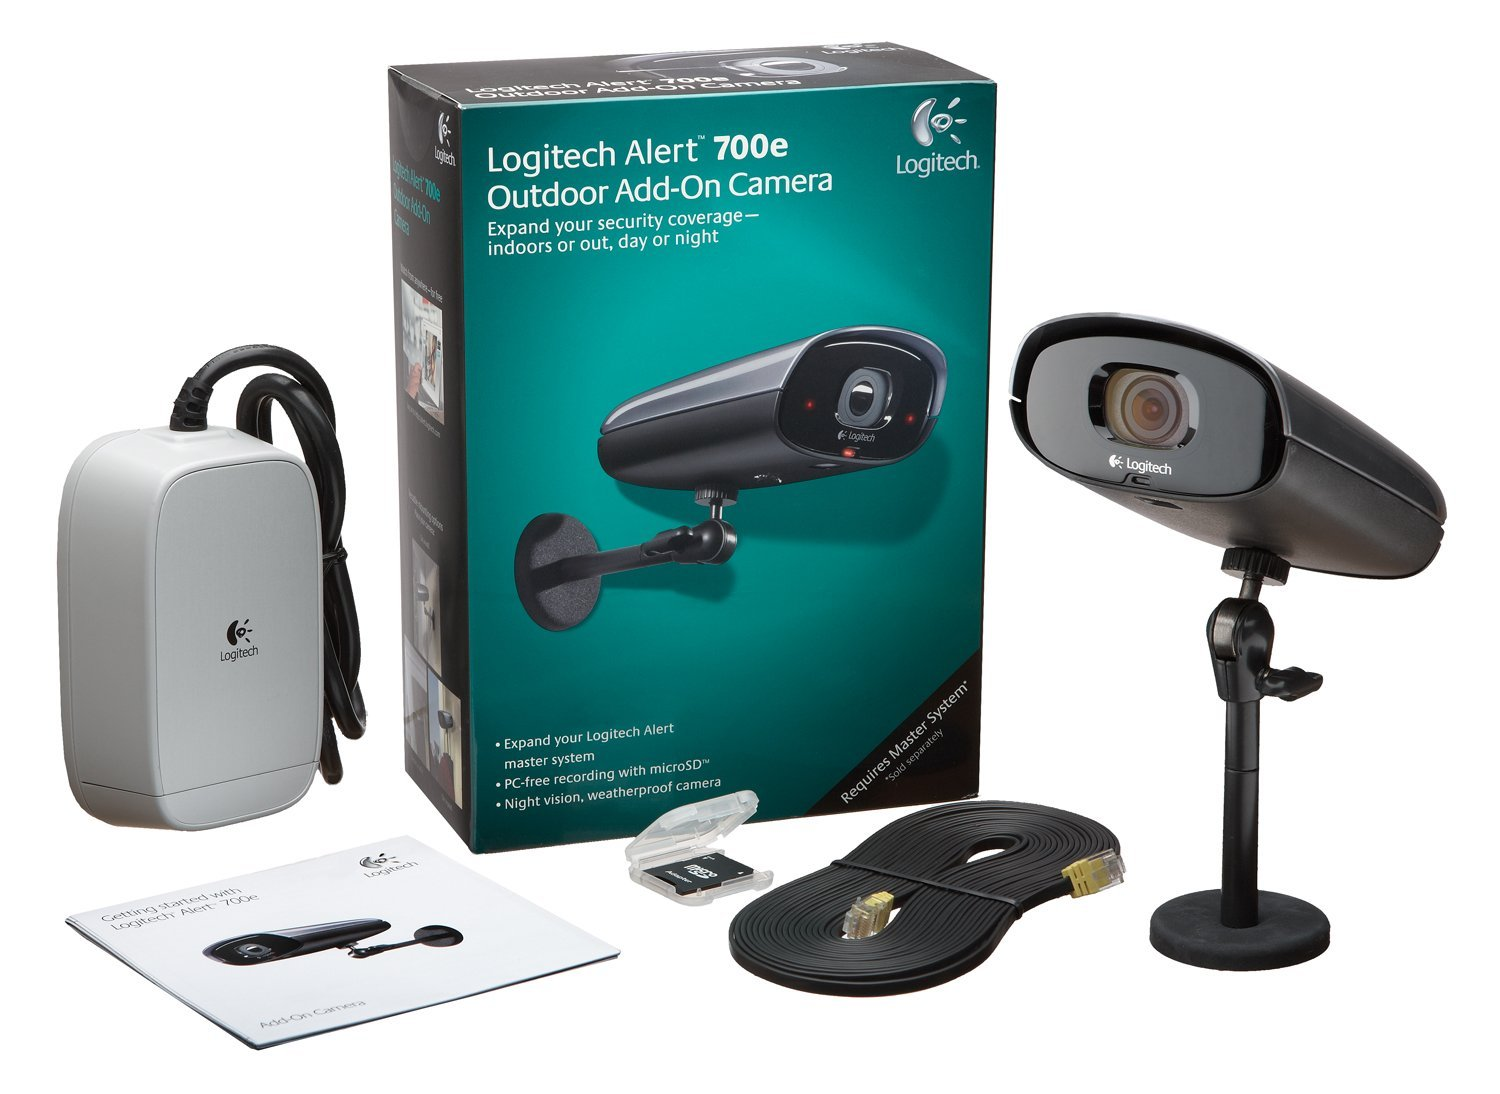 Review of Logitech Alert 700e Outdoor Add-On HD Quality Security Camera with Night Vision (961-000338)